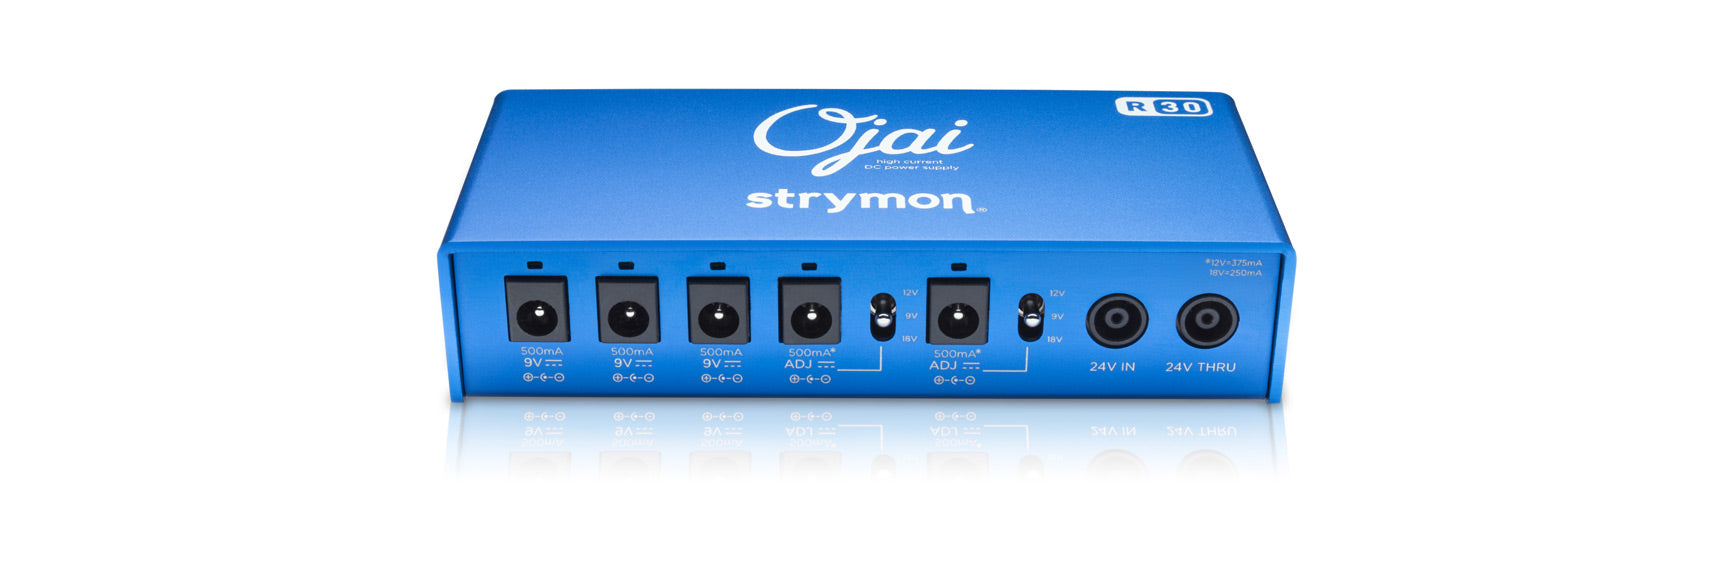 Strymon Ojai R30 – Expansion Kit